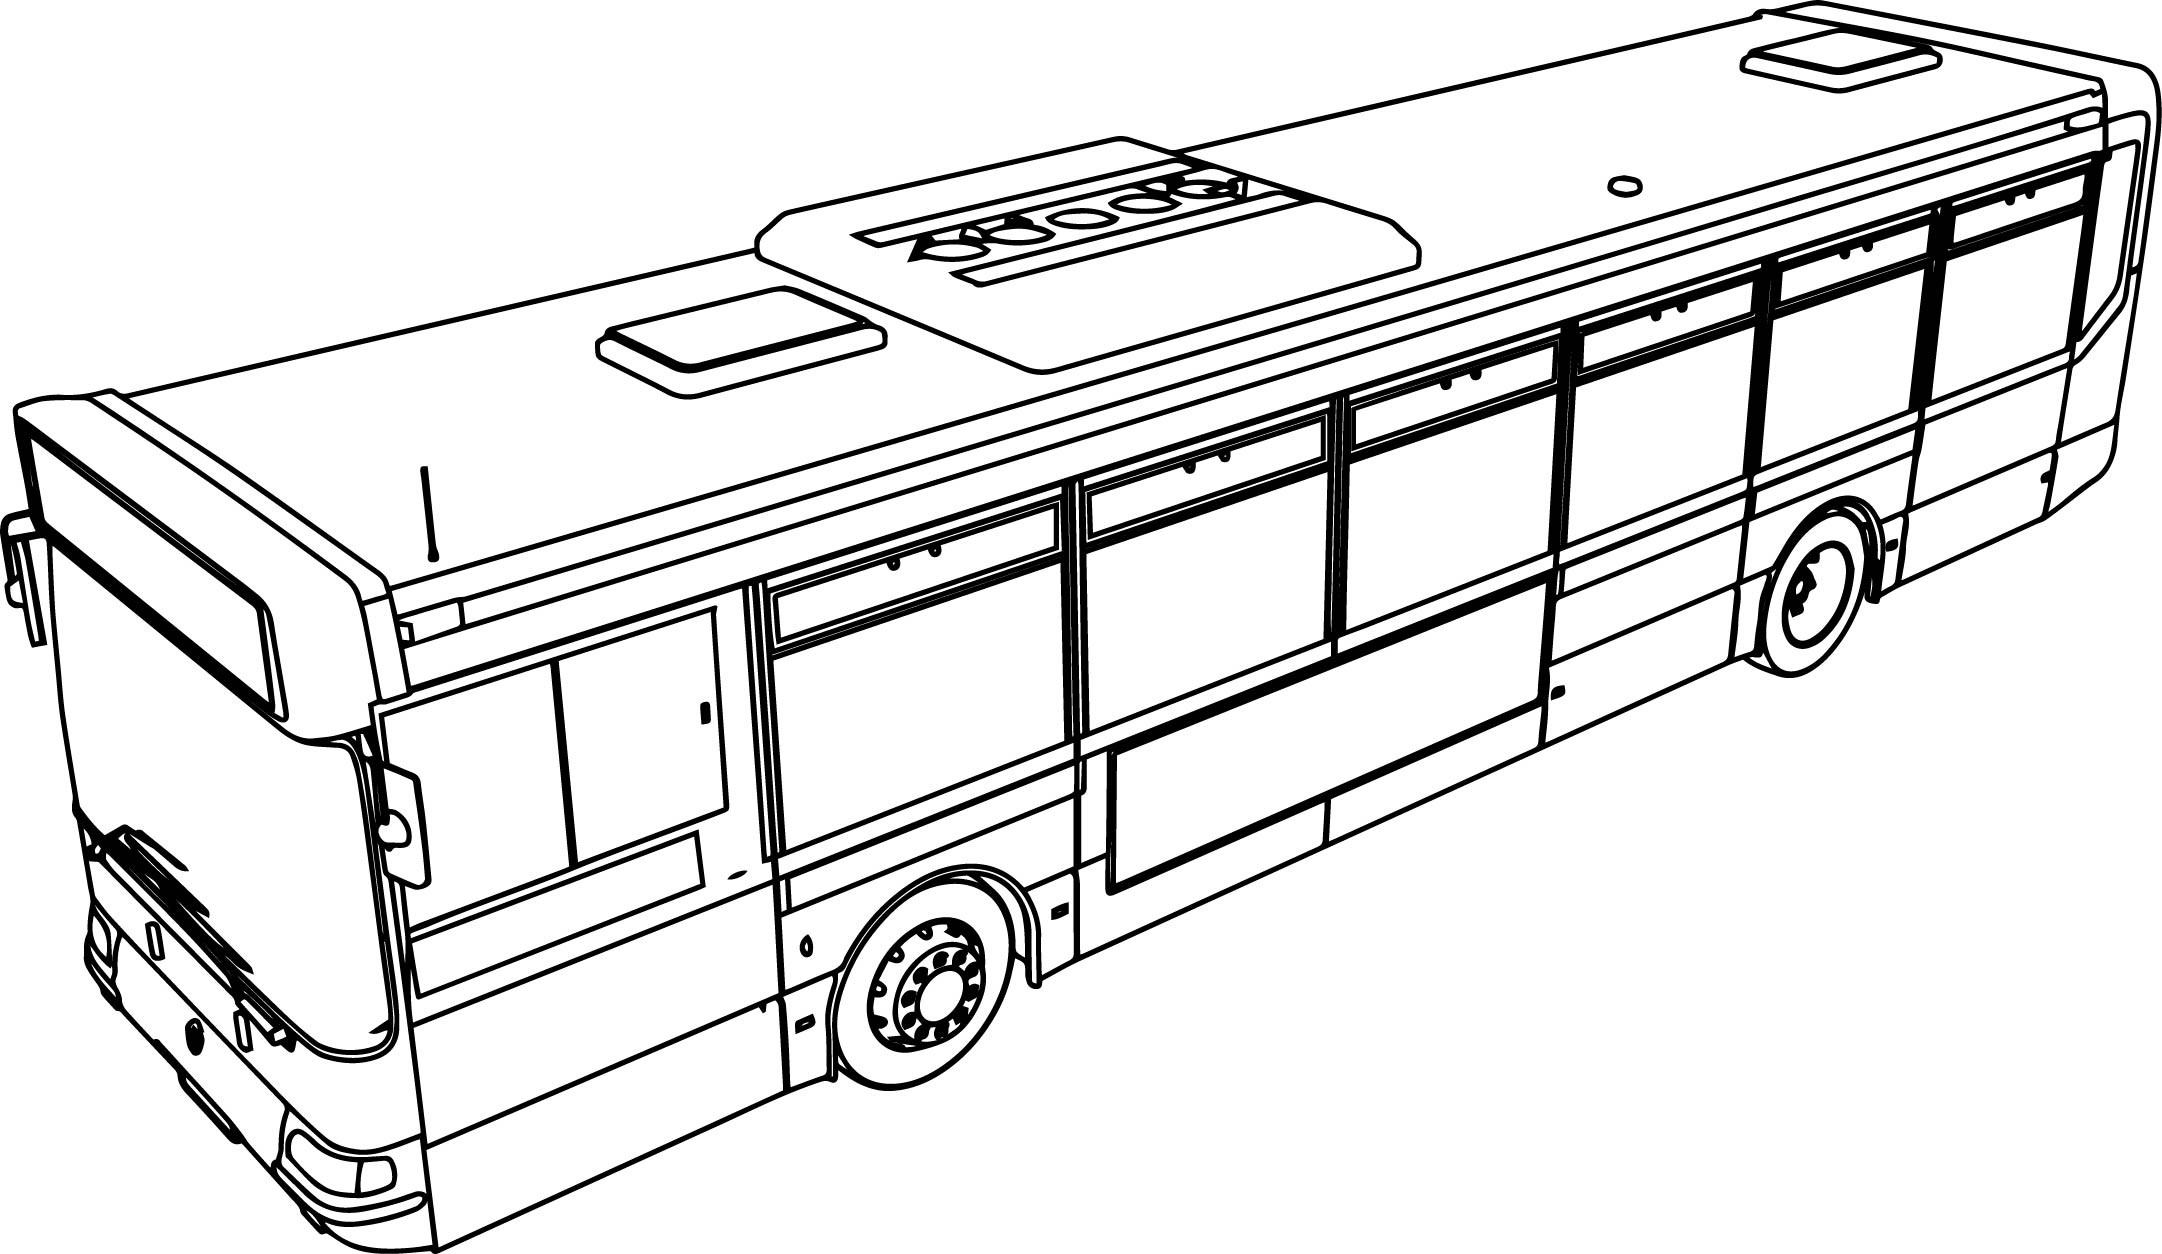 coloring pages bus - photo#30